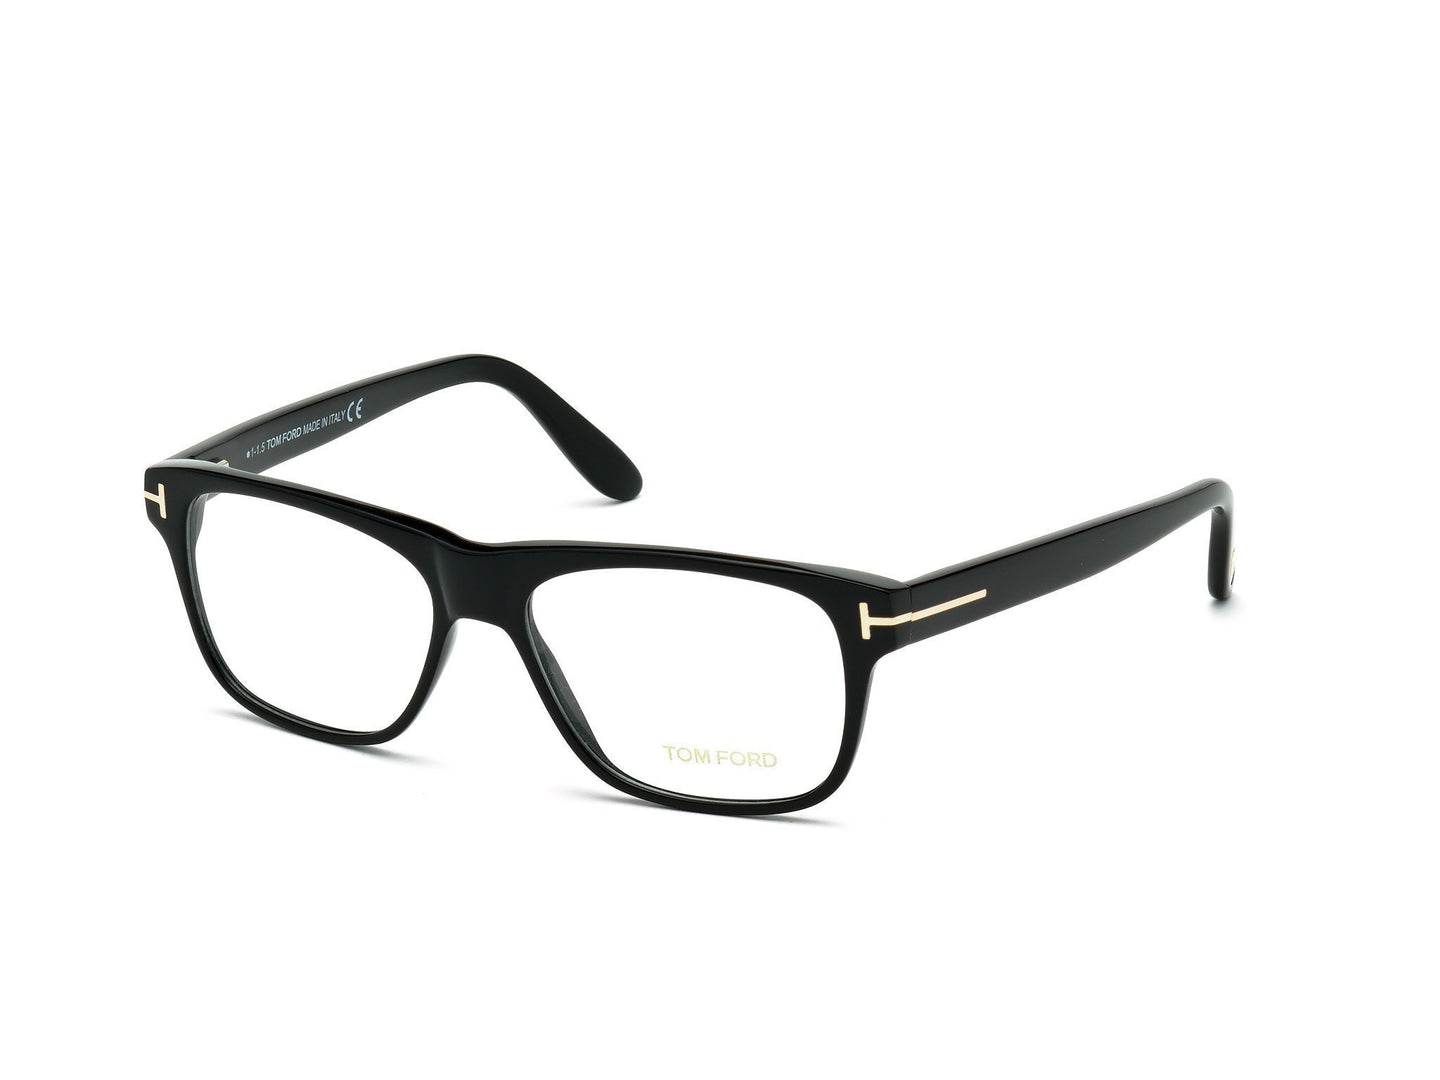 Tom Ford Plastic Frame-FT5312